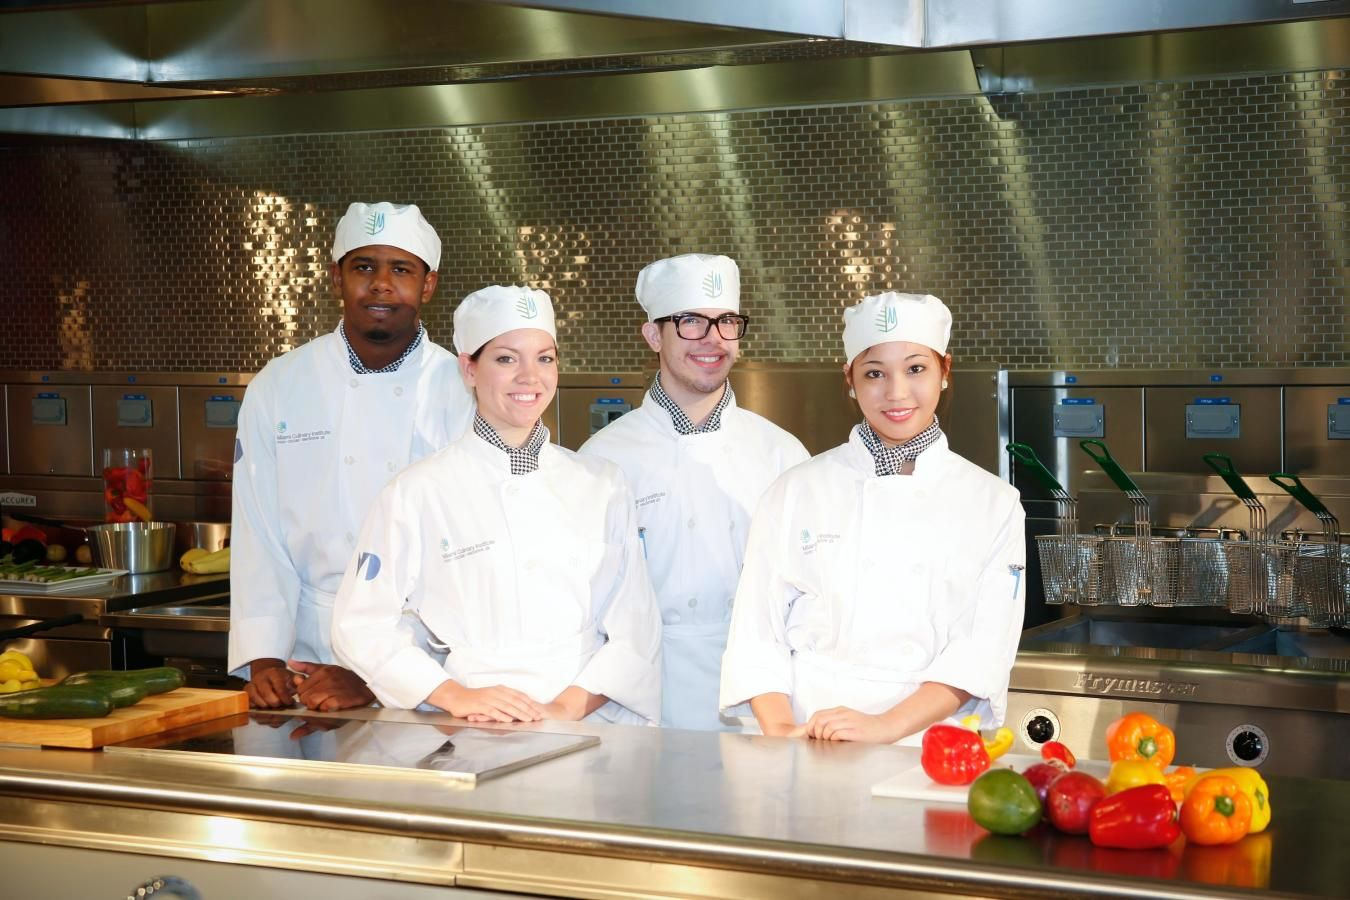 Students from the Culinary Arts program